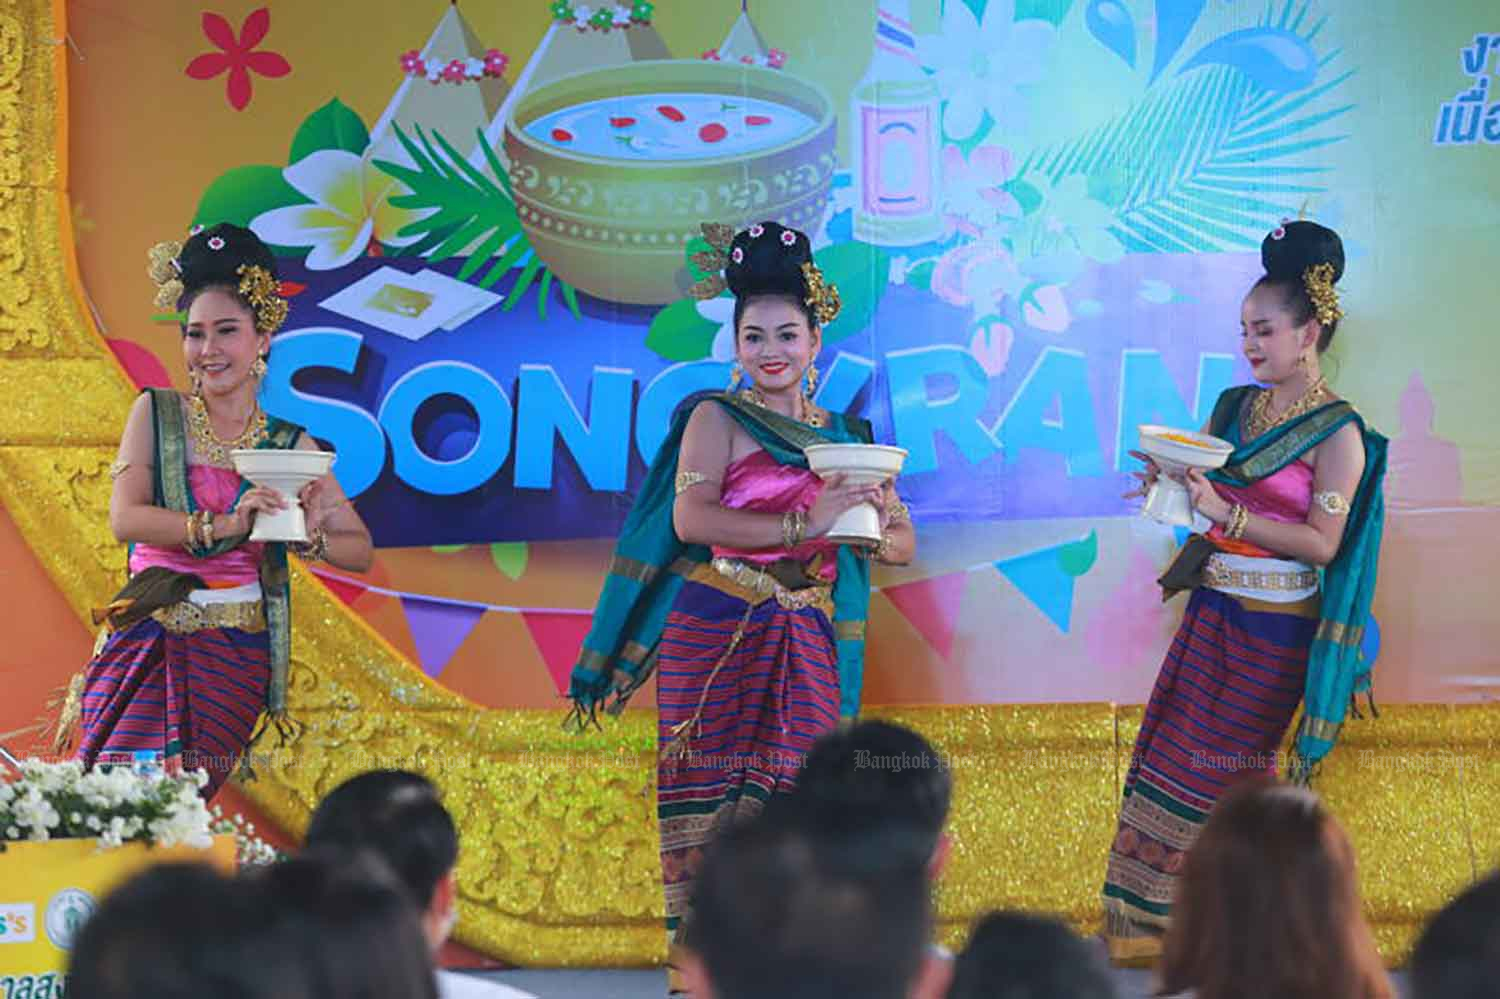 The Bangkok Metropolitan Administration organises an event to promote the Songkran festival late last month. (Photo: Somchai Poomlard)